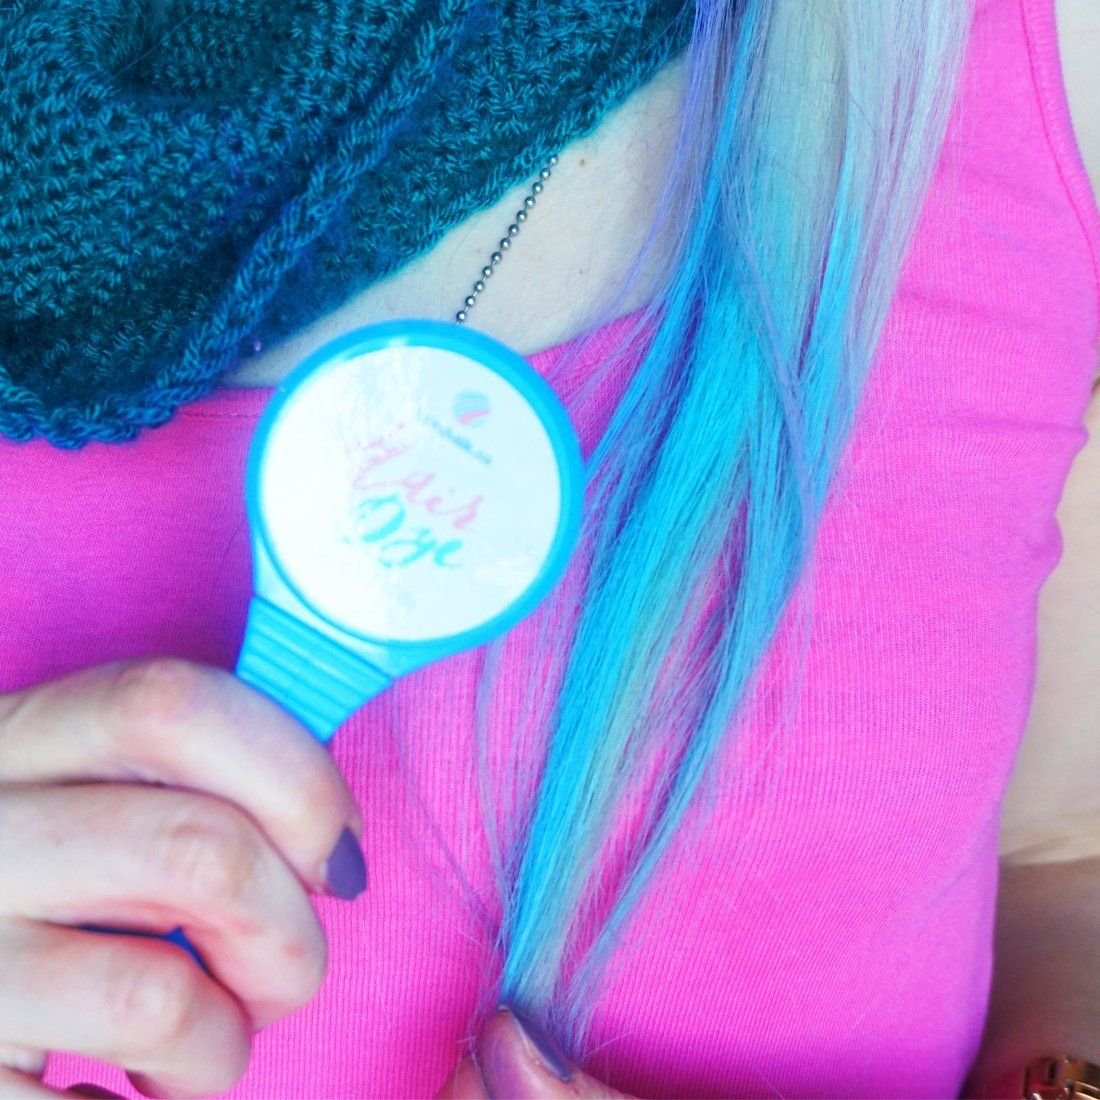 Vibrant blue hair color pad for instant hair dying hair chalk pad